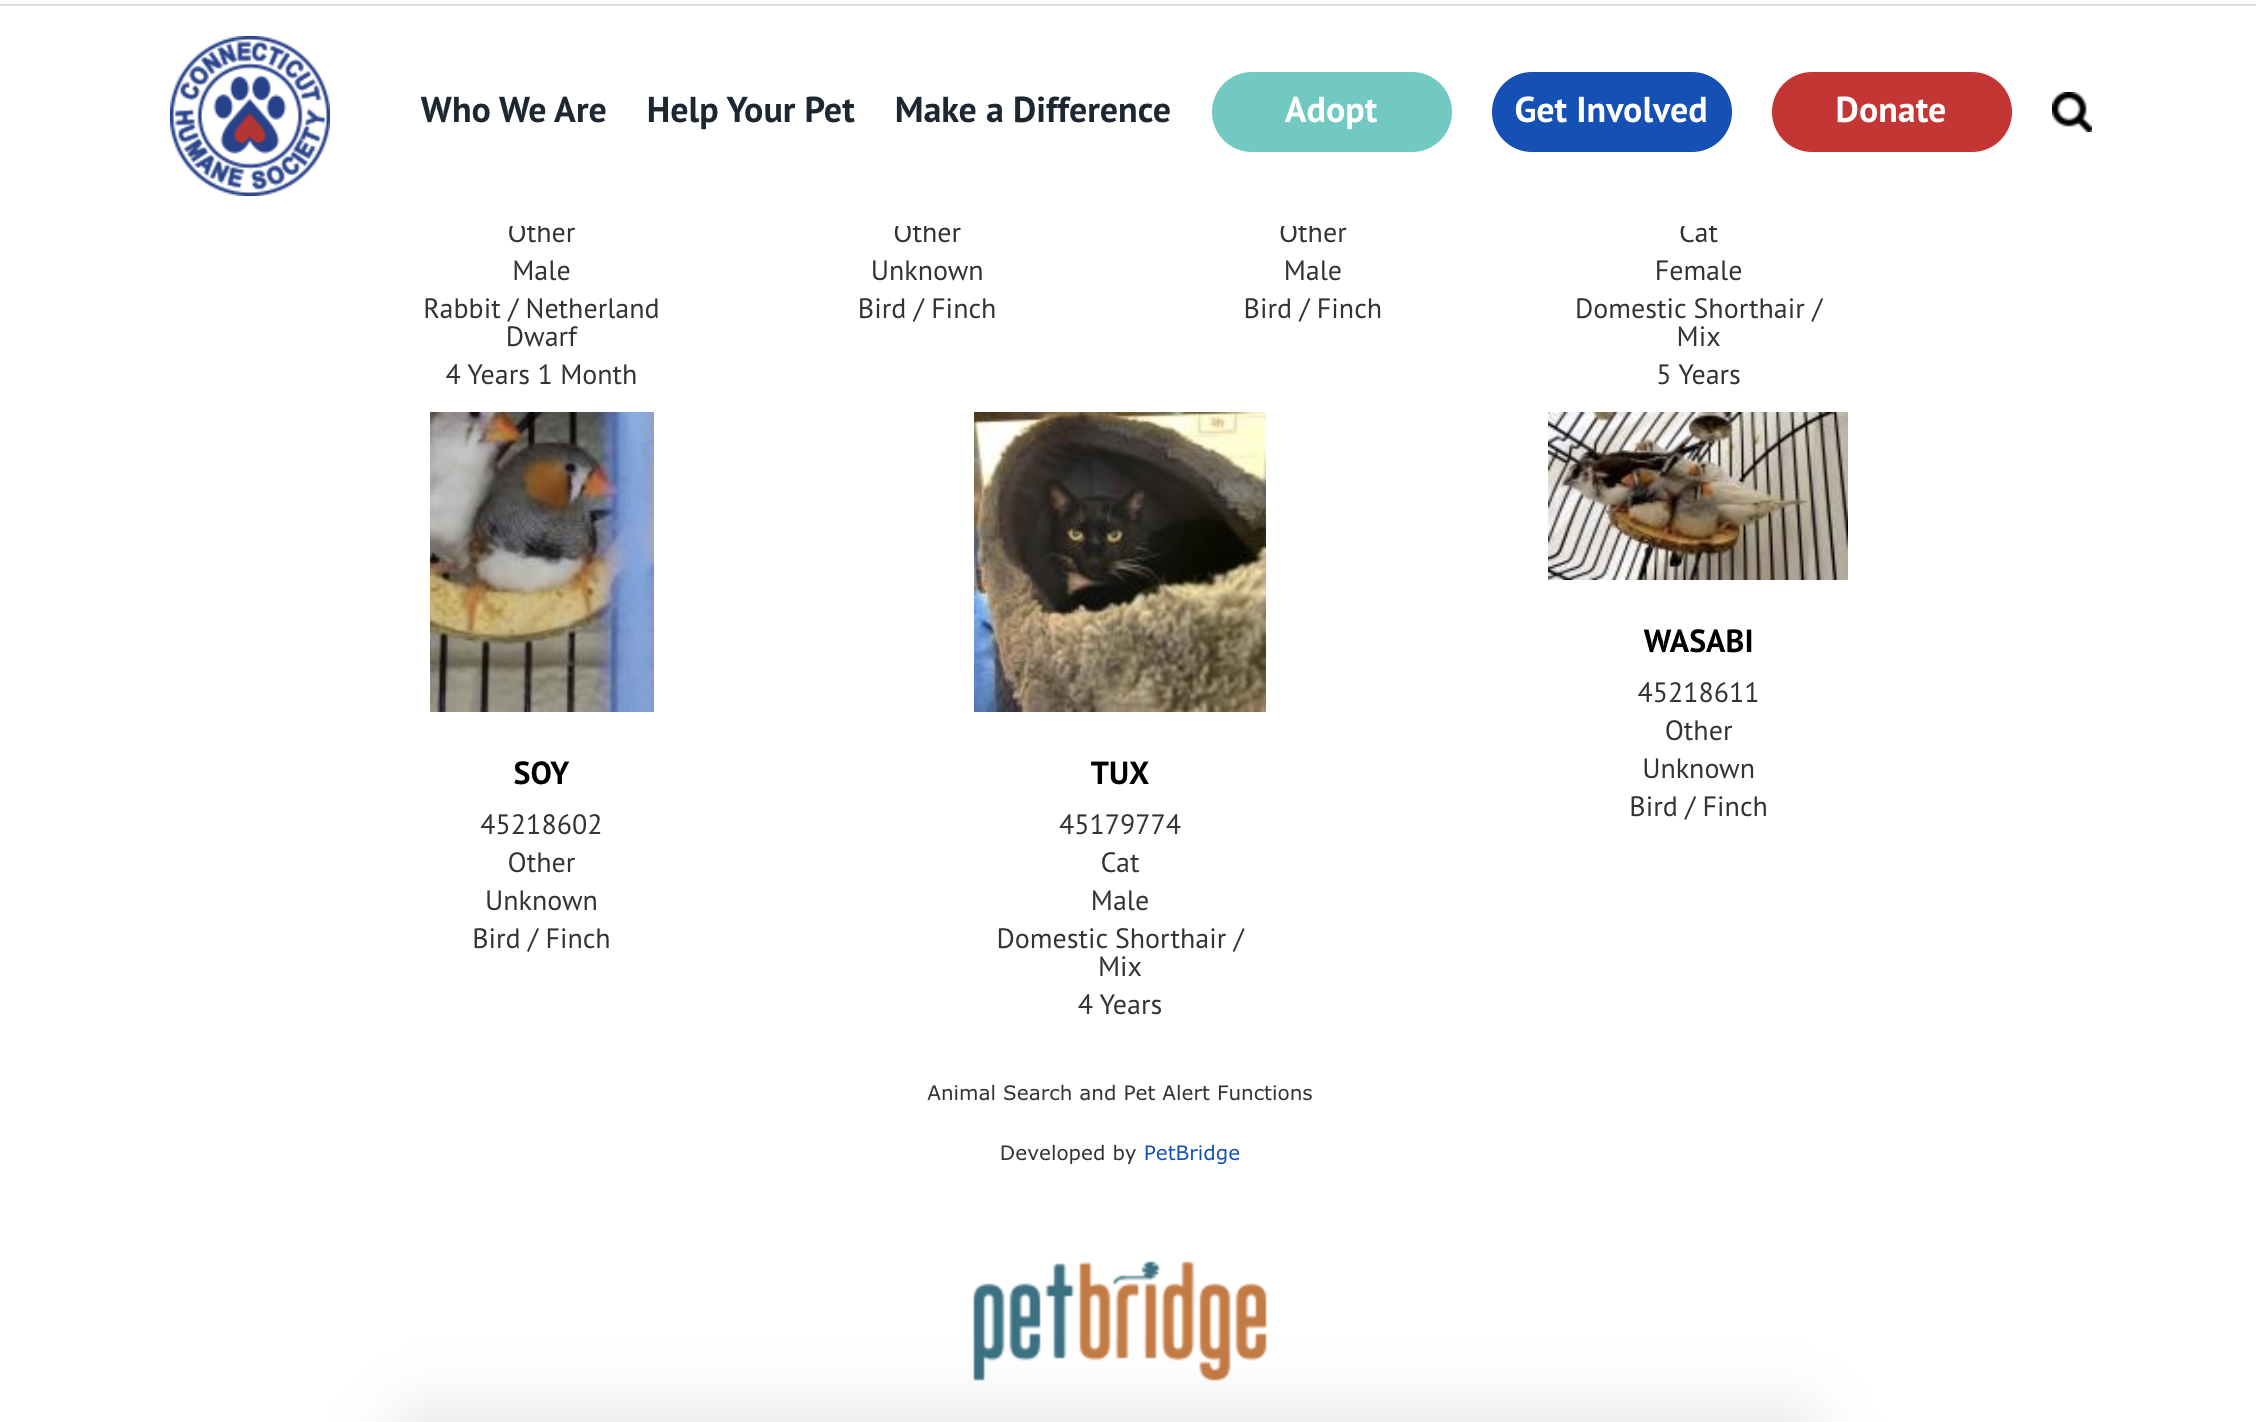 A display of adoptable pets from the Connecticut Humane Society